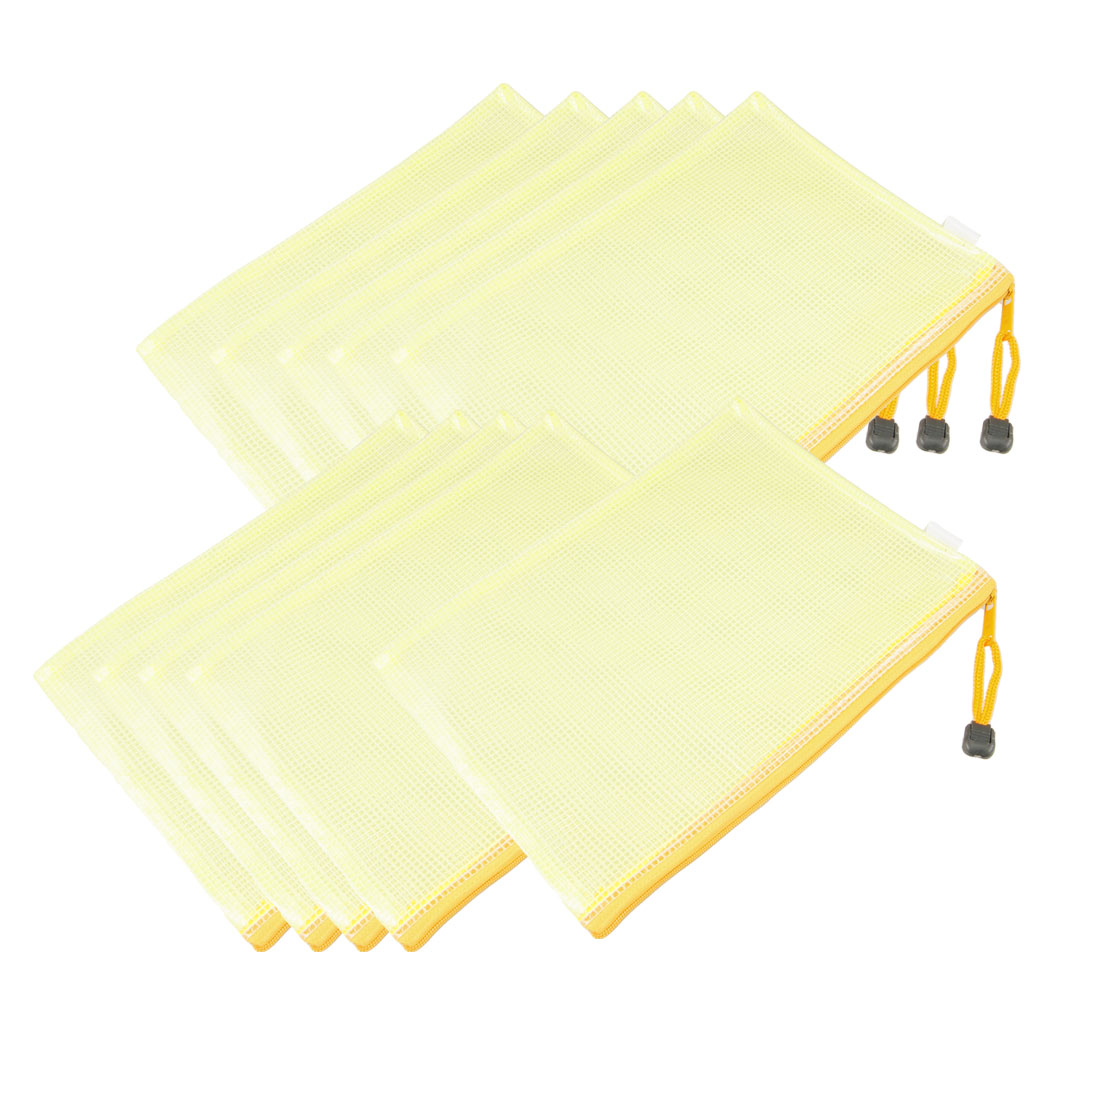 10 Pcs 25.3cm x 18.5cm Yellow Grid Design Zip Up A5 File Doucment Bag w Strap